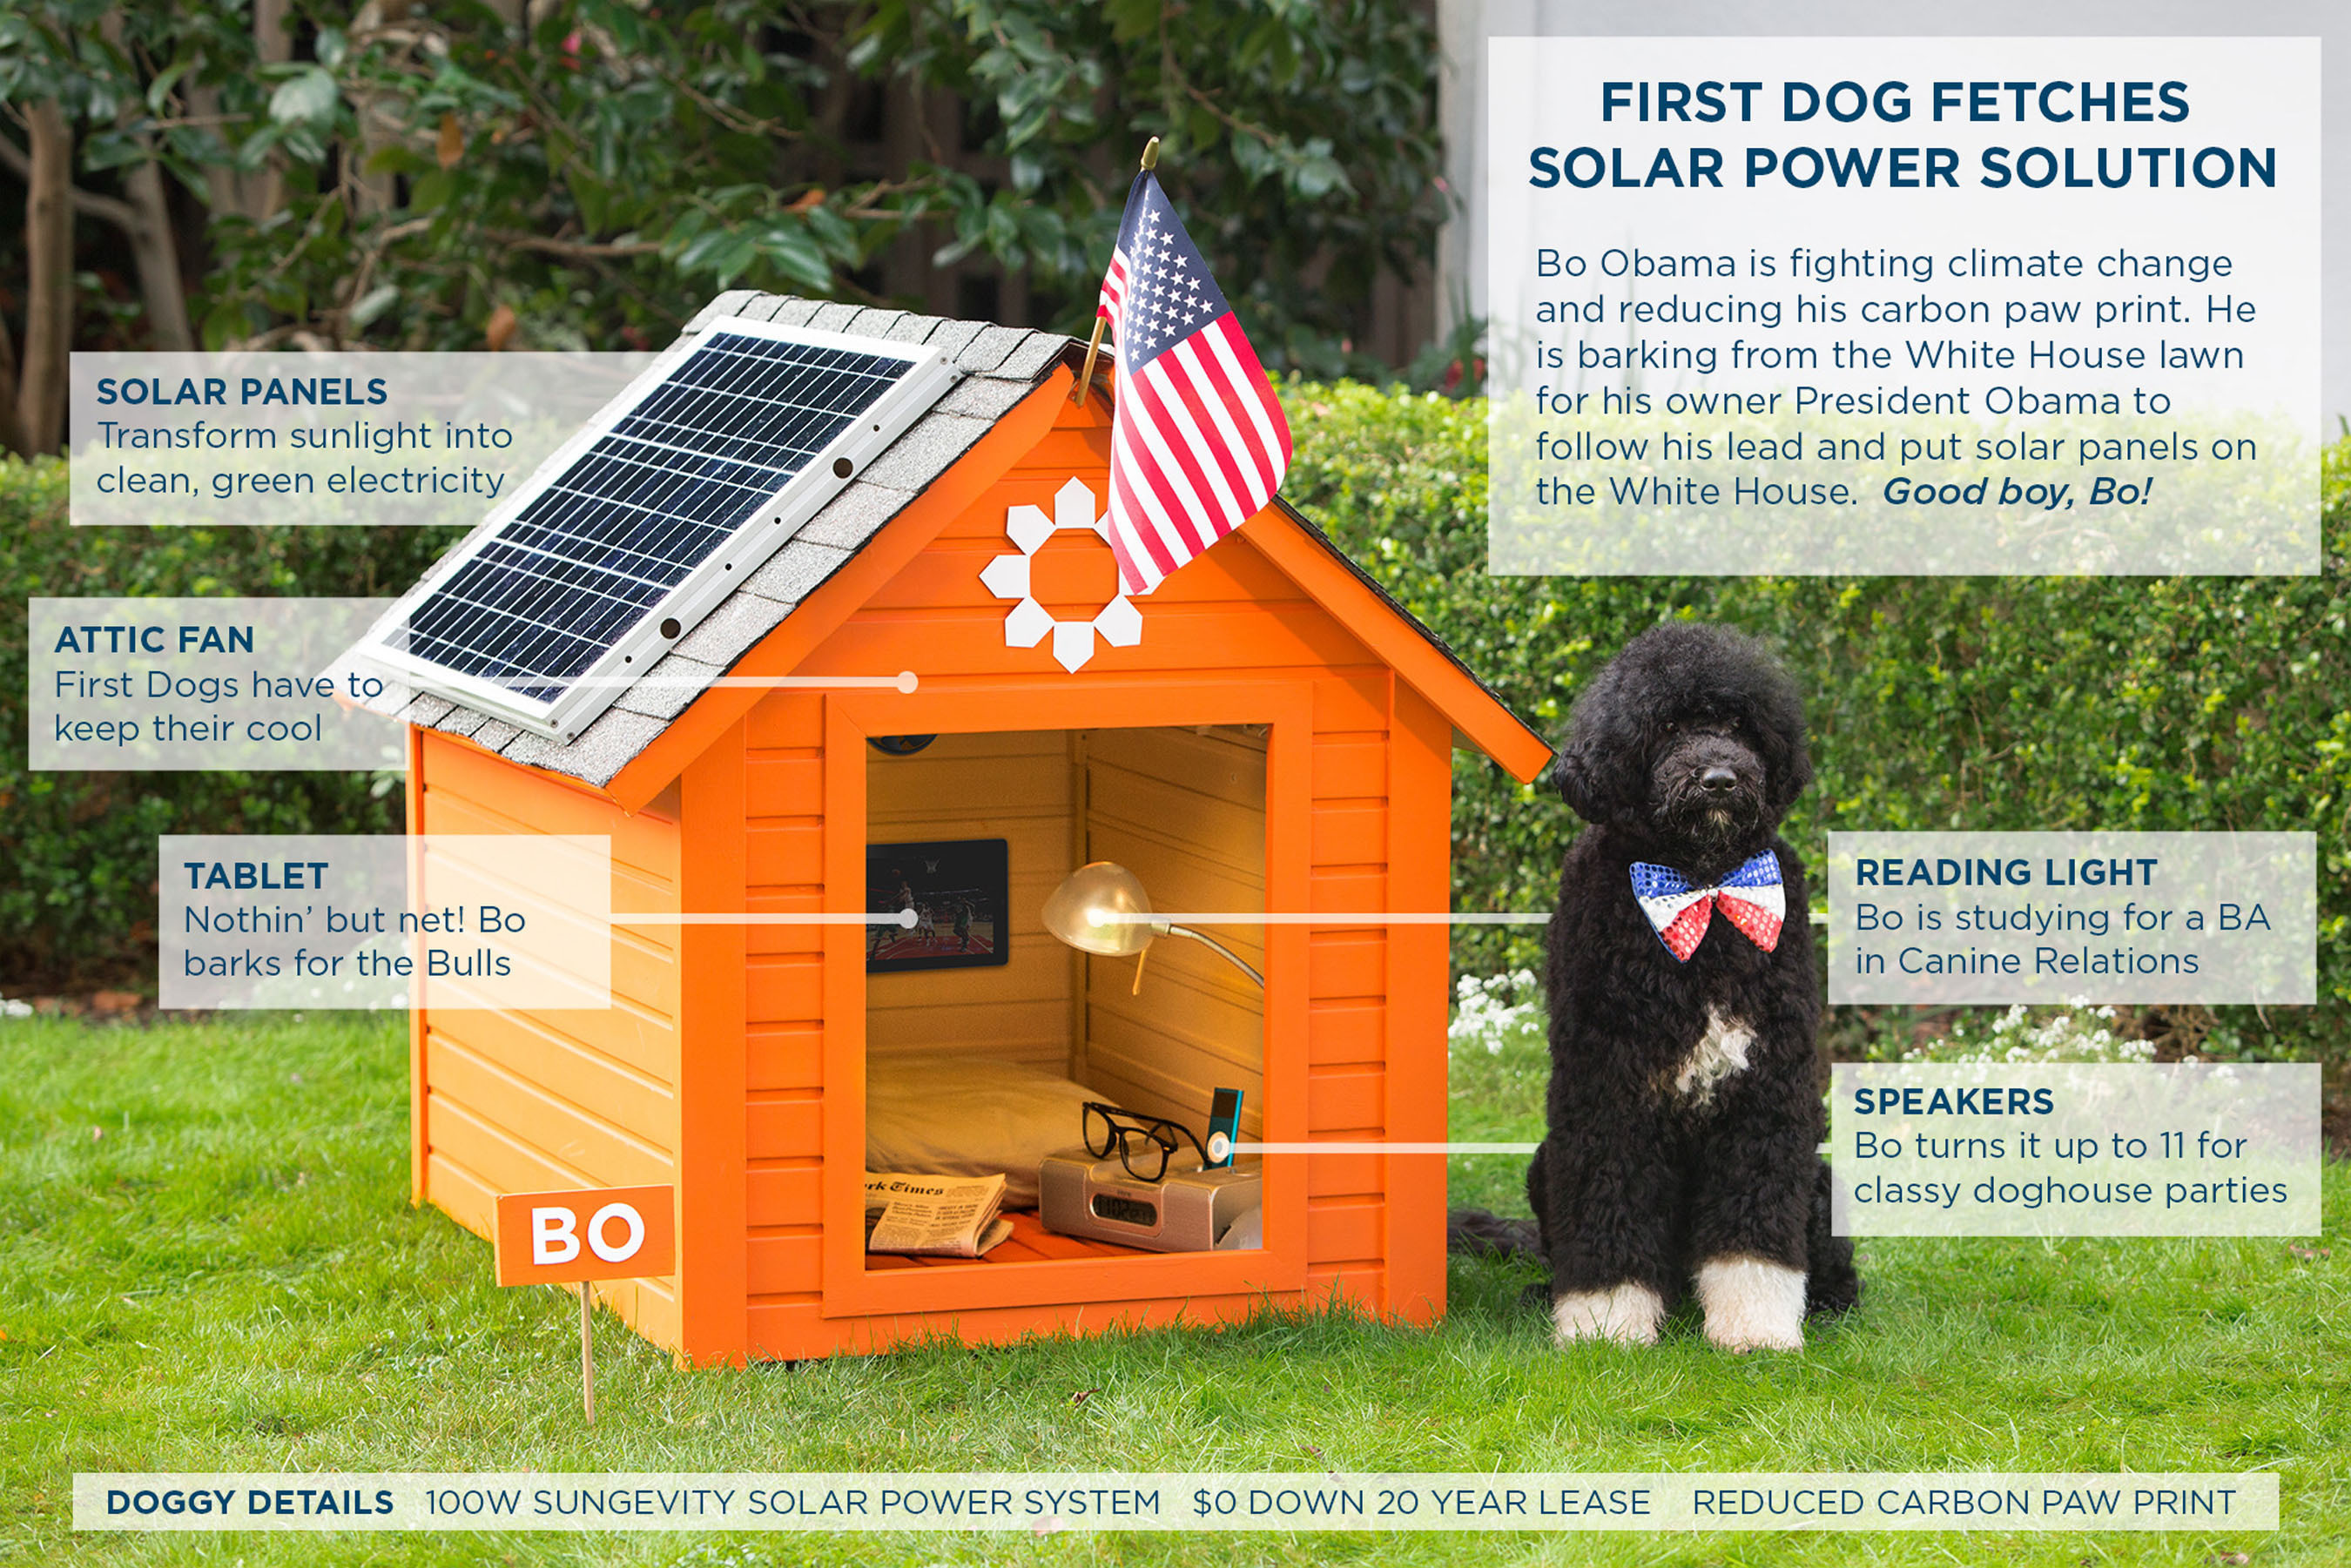 Sungevity: President Obama Addresses Climate Change While First Dog Bo Fetches The Solution